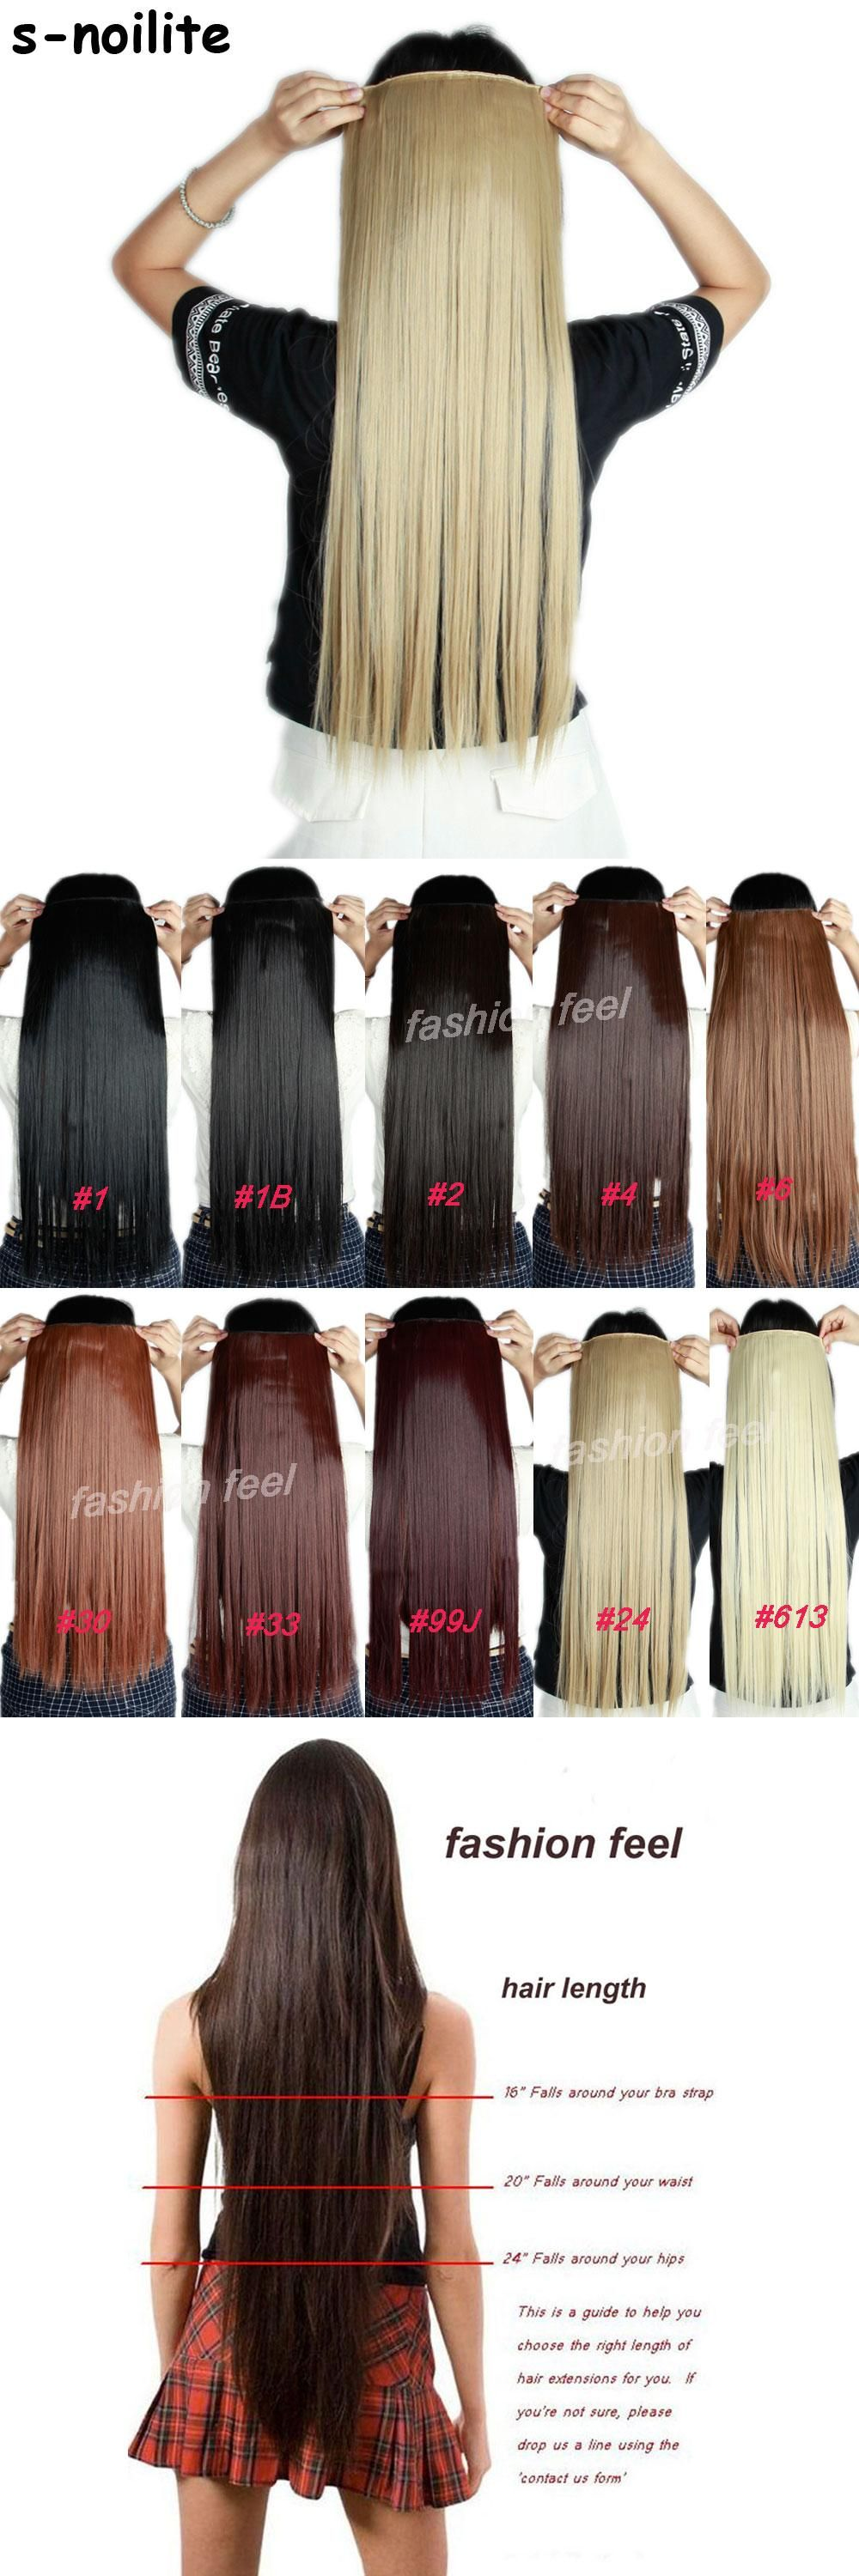 58 76cm Long Women Lady Straight Real Thick 150g 34 Full Head Clip